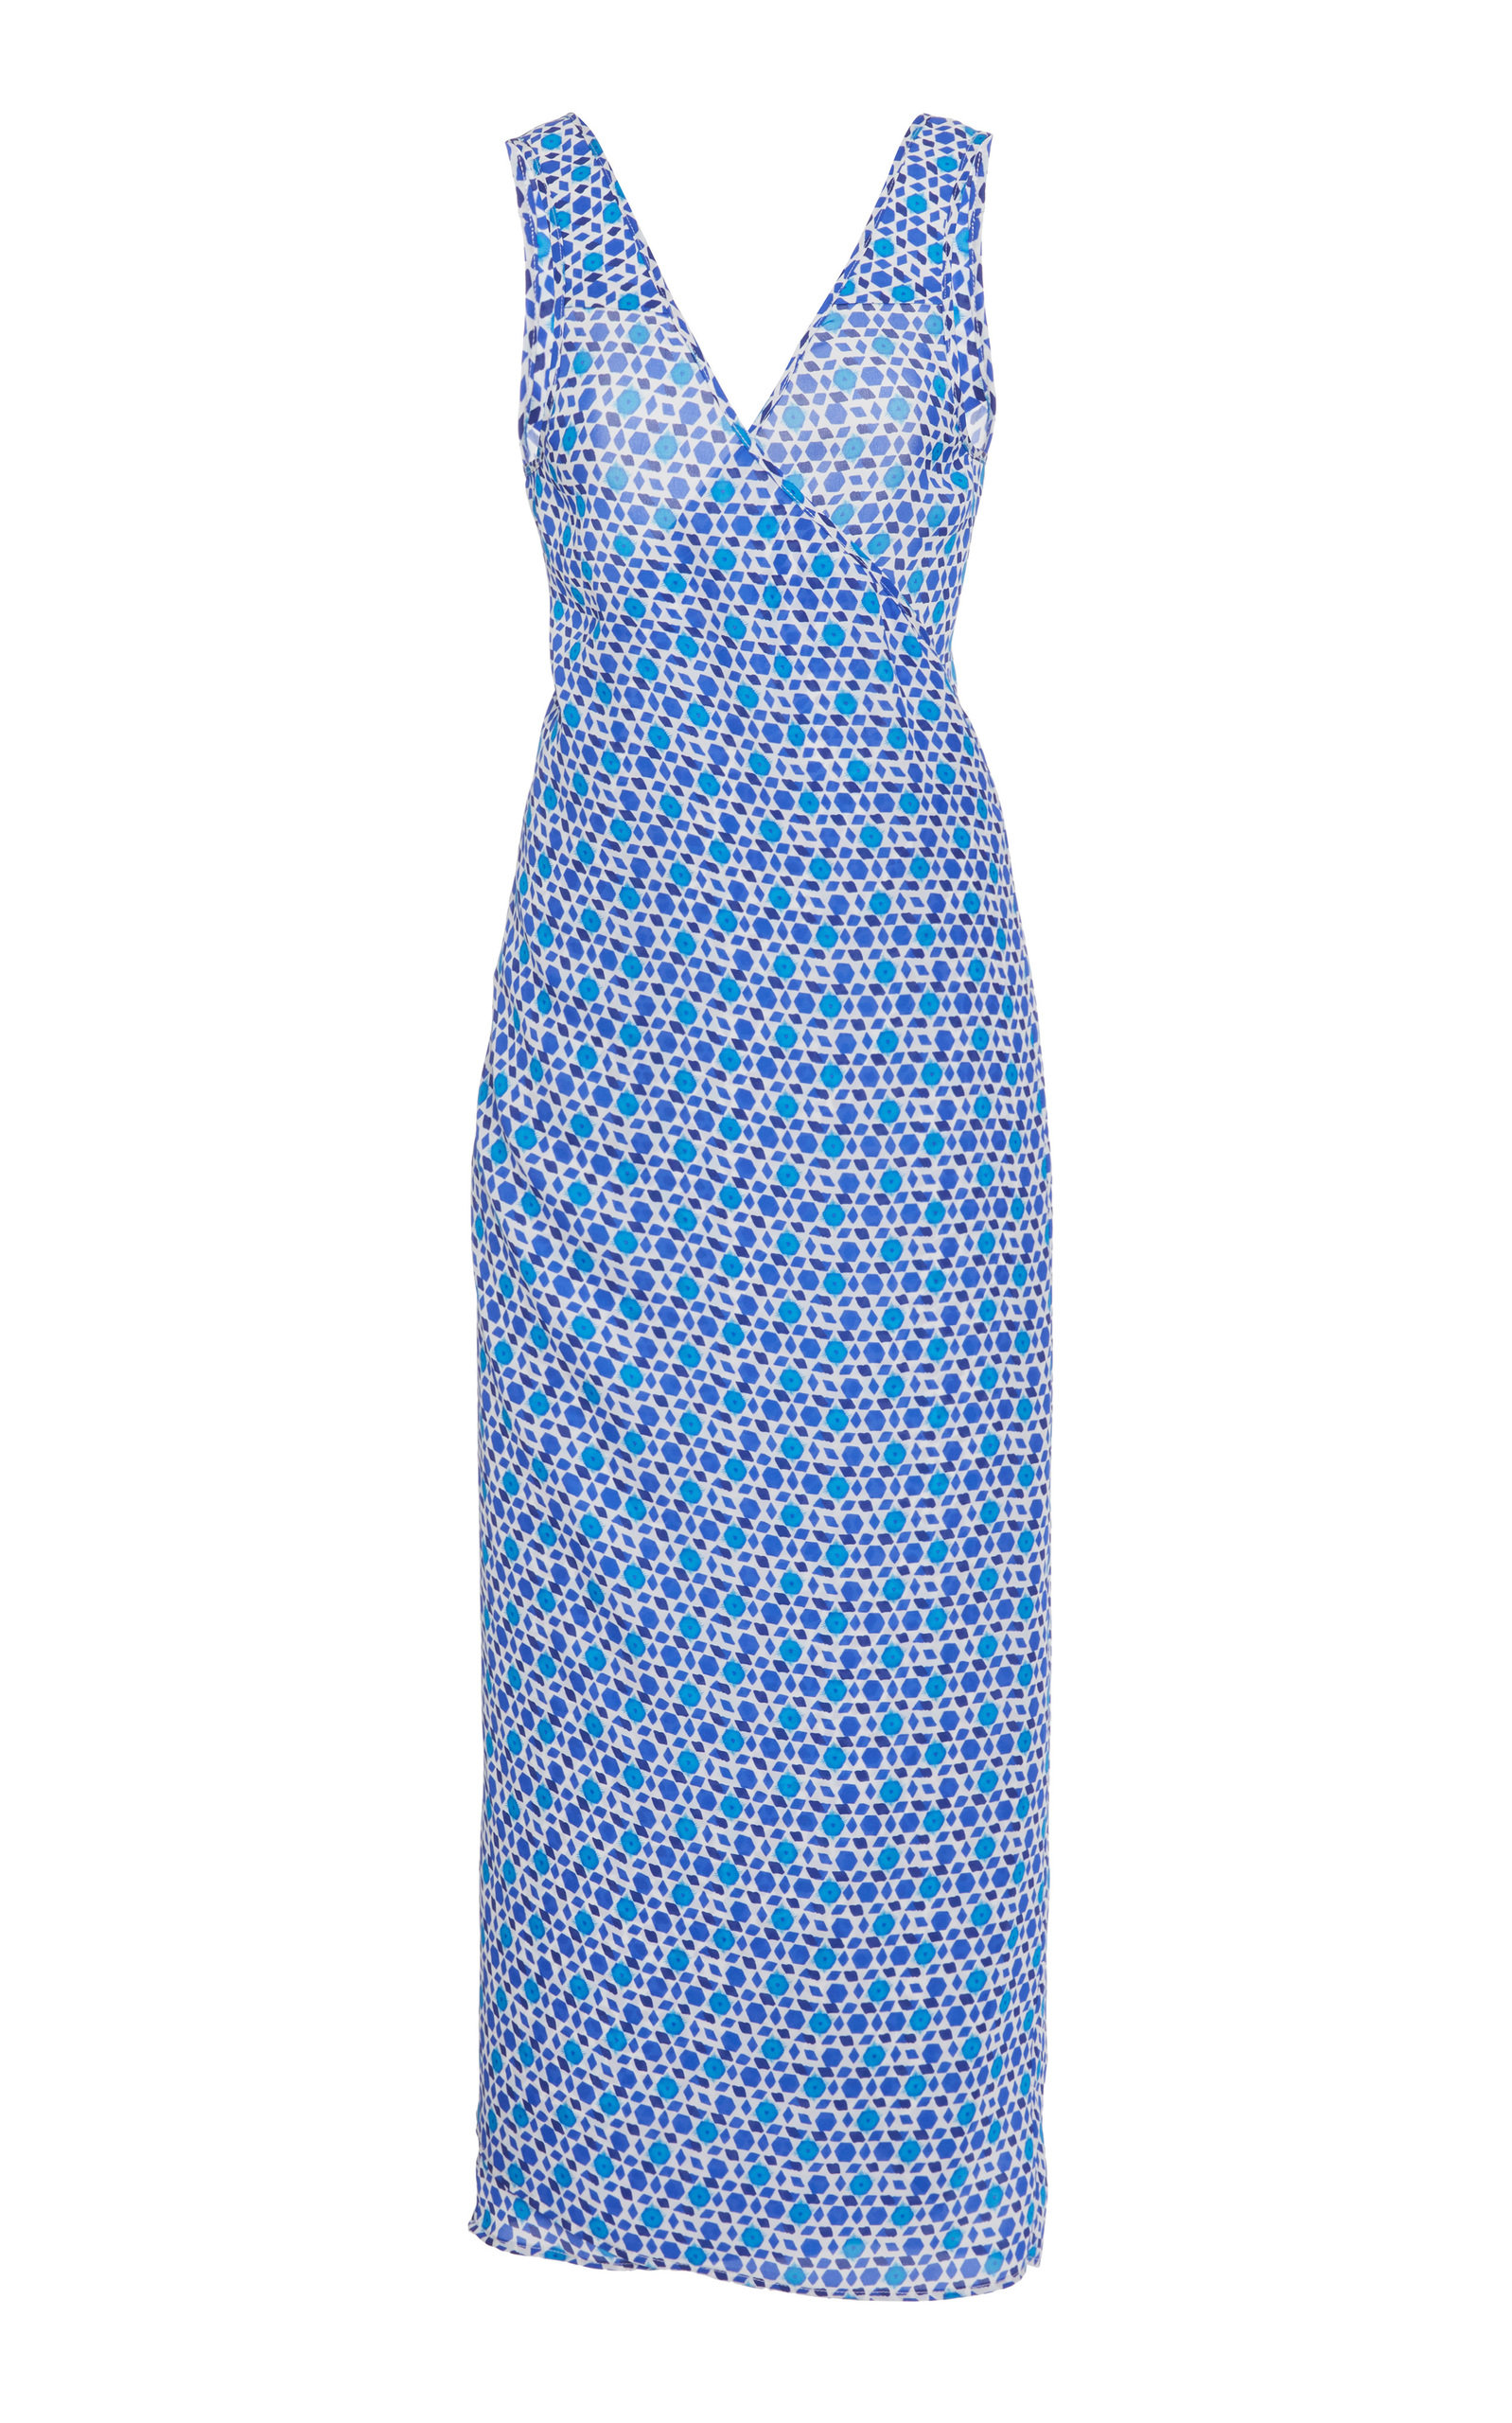 Buy Ciao Lucia Marguerita Printed Silk Midi Dress online, shop Ciao Lucia at the best price